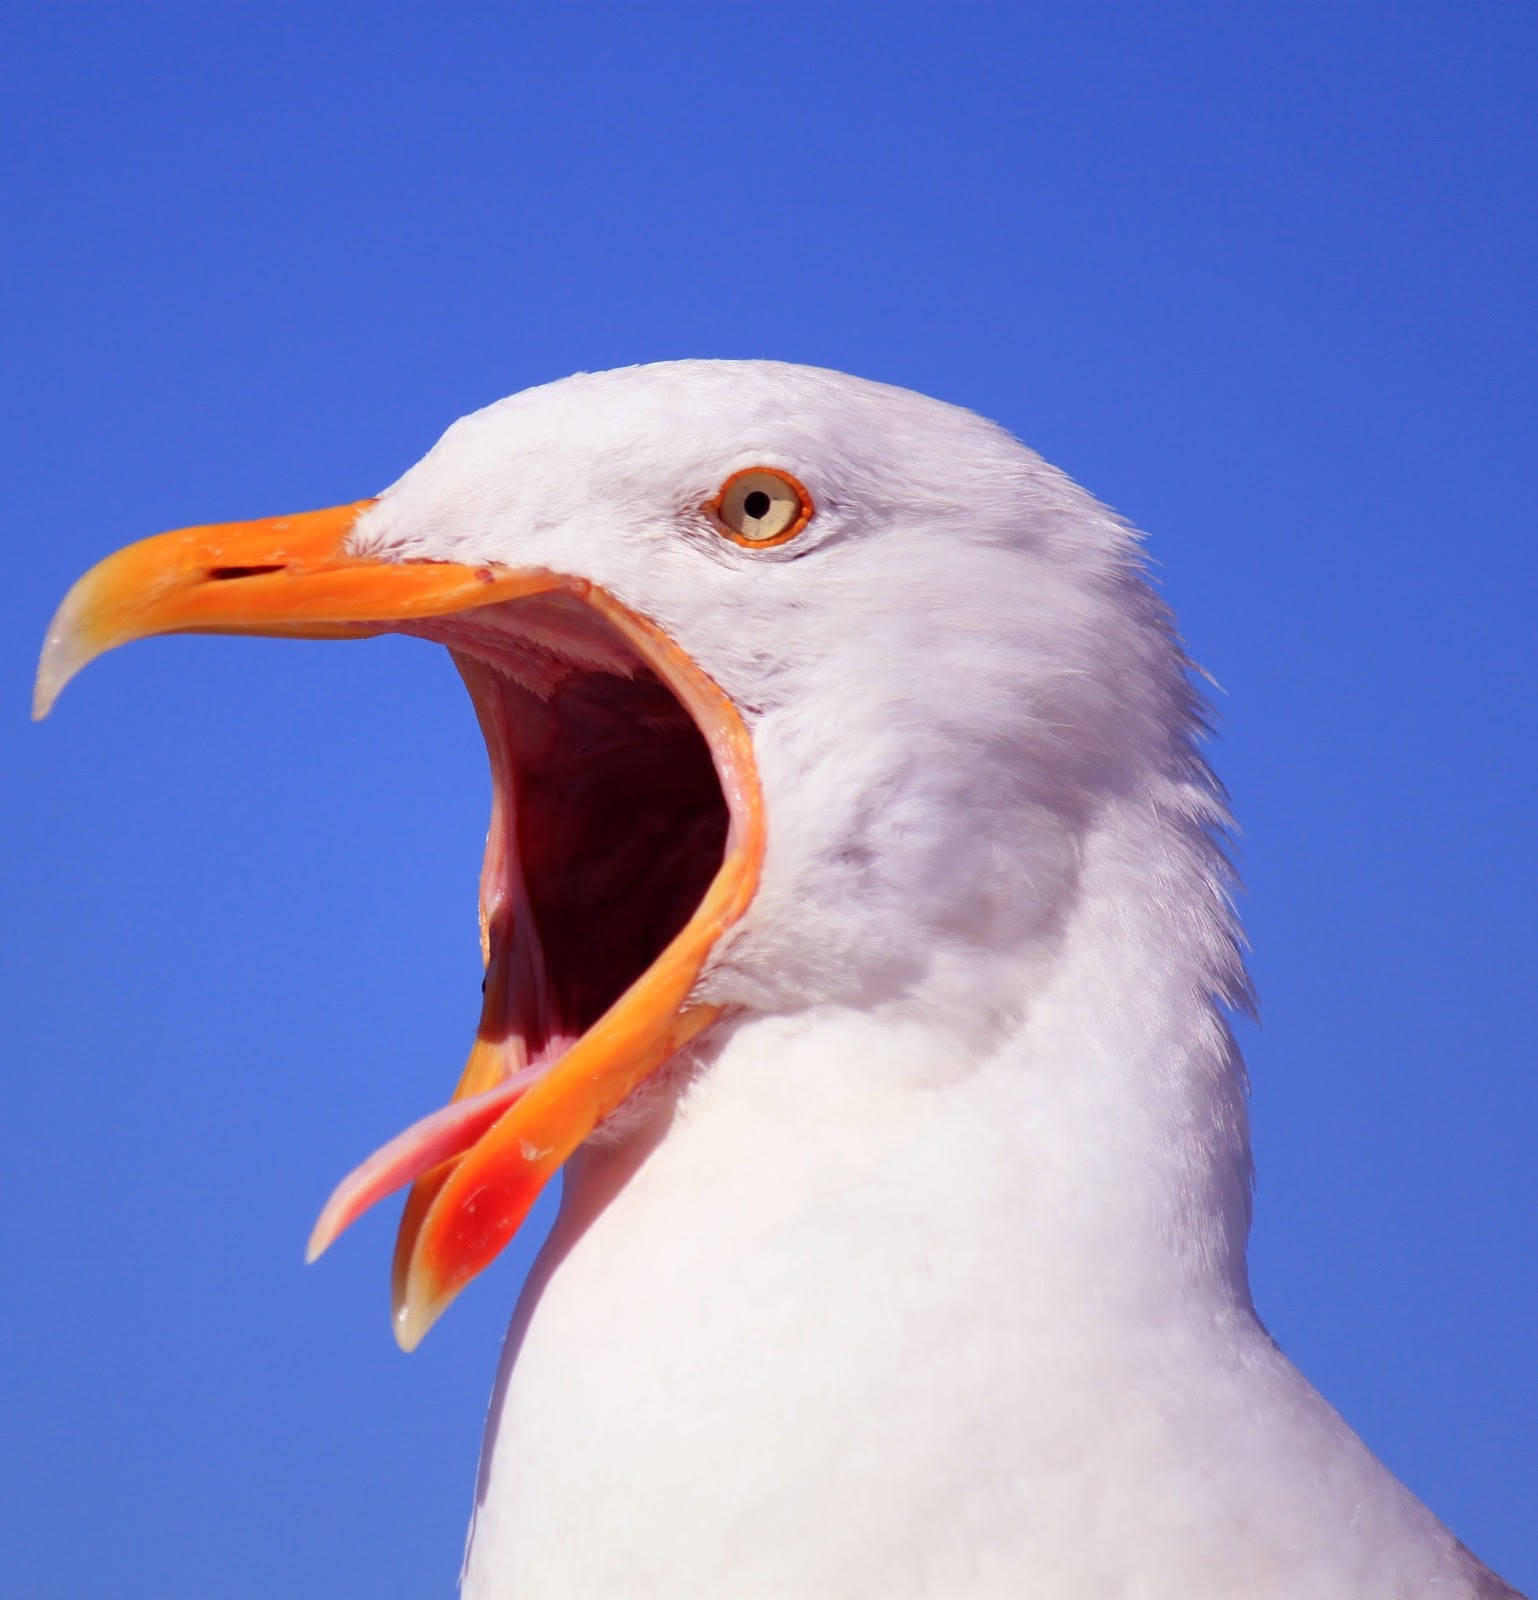 Picture of a seagull with it's tongue out.